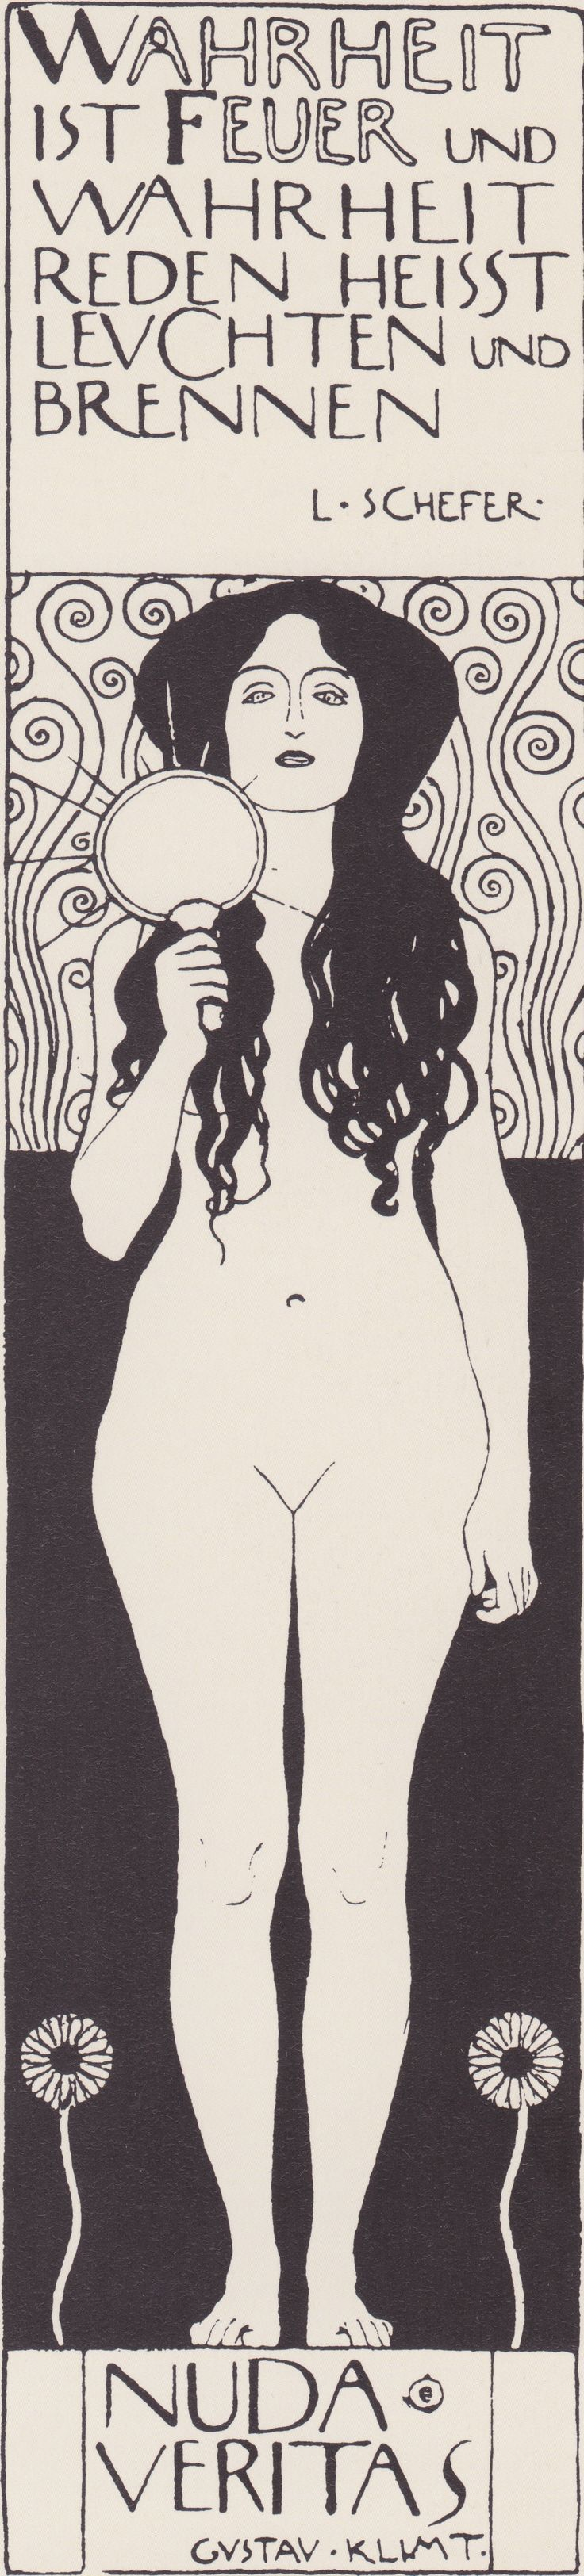 """Nuda Veritas, Gustav Klimt """"Truth is fire and speaking the truth means shining and burning."""""""